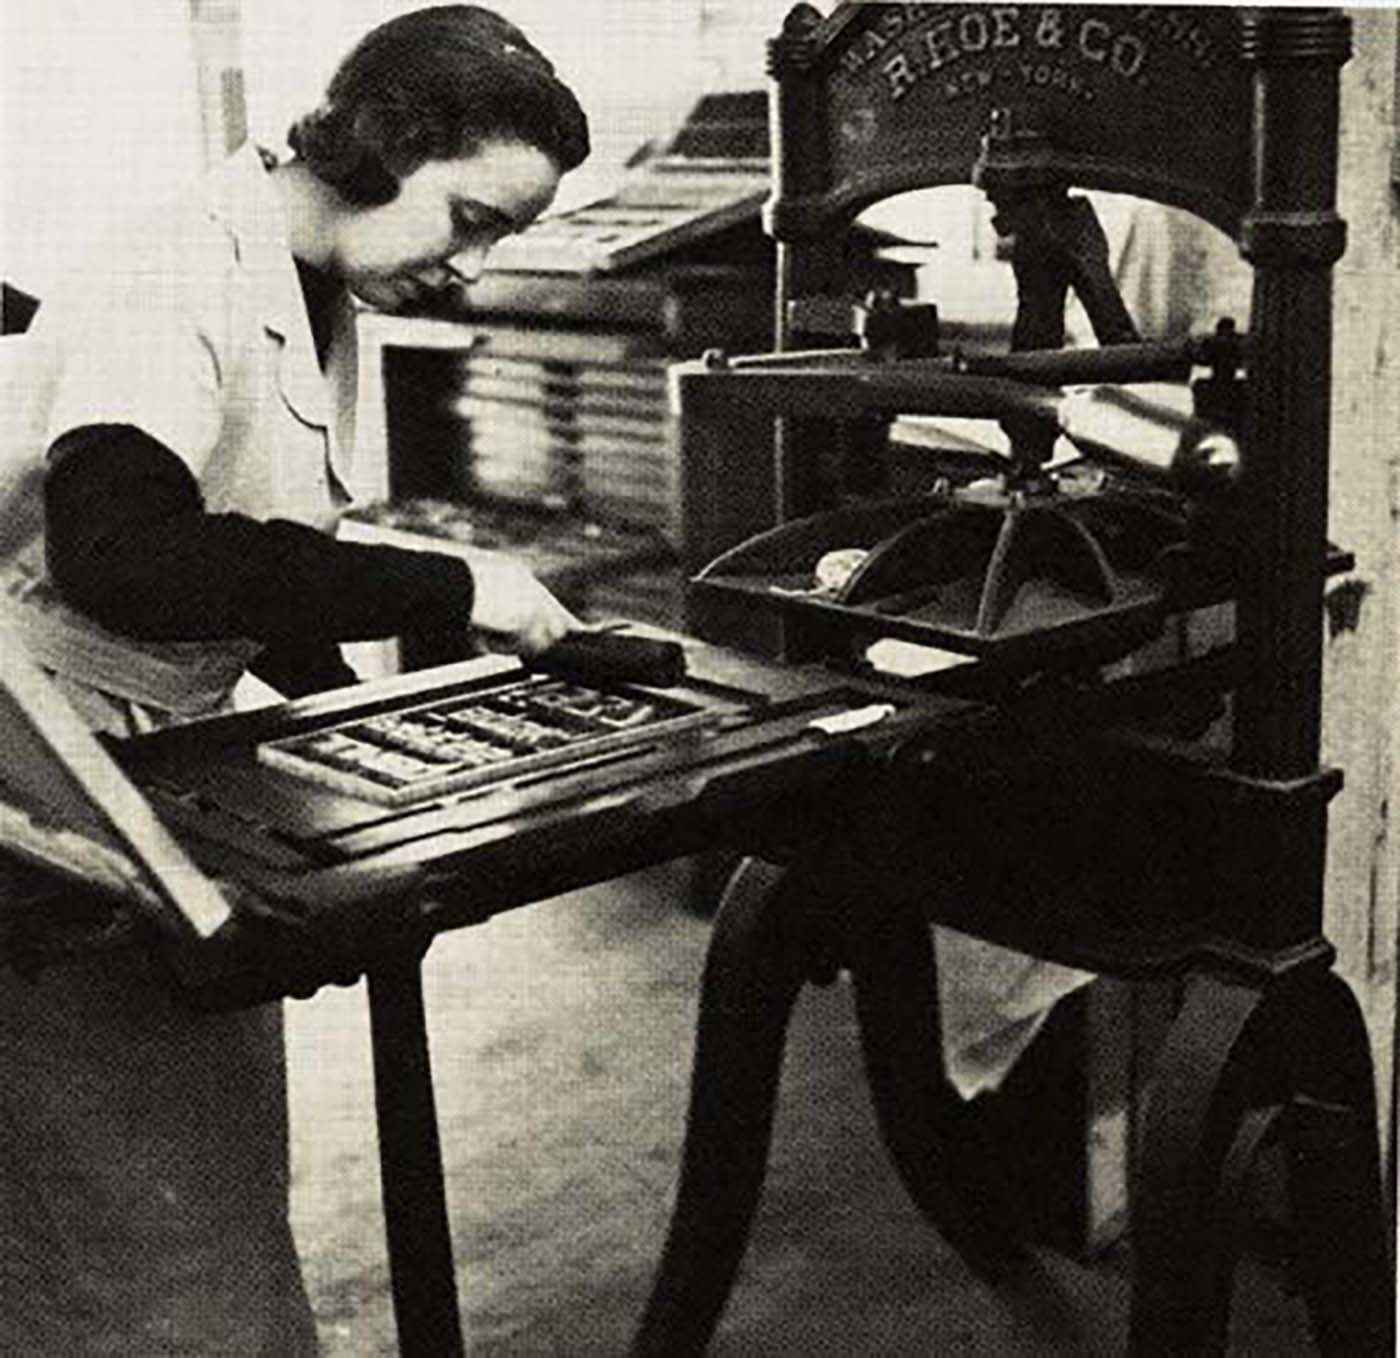 Jane Grabhorn printing on the Washington hand press, ca. 1945 (Princeton University Libraries)